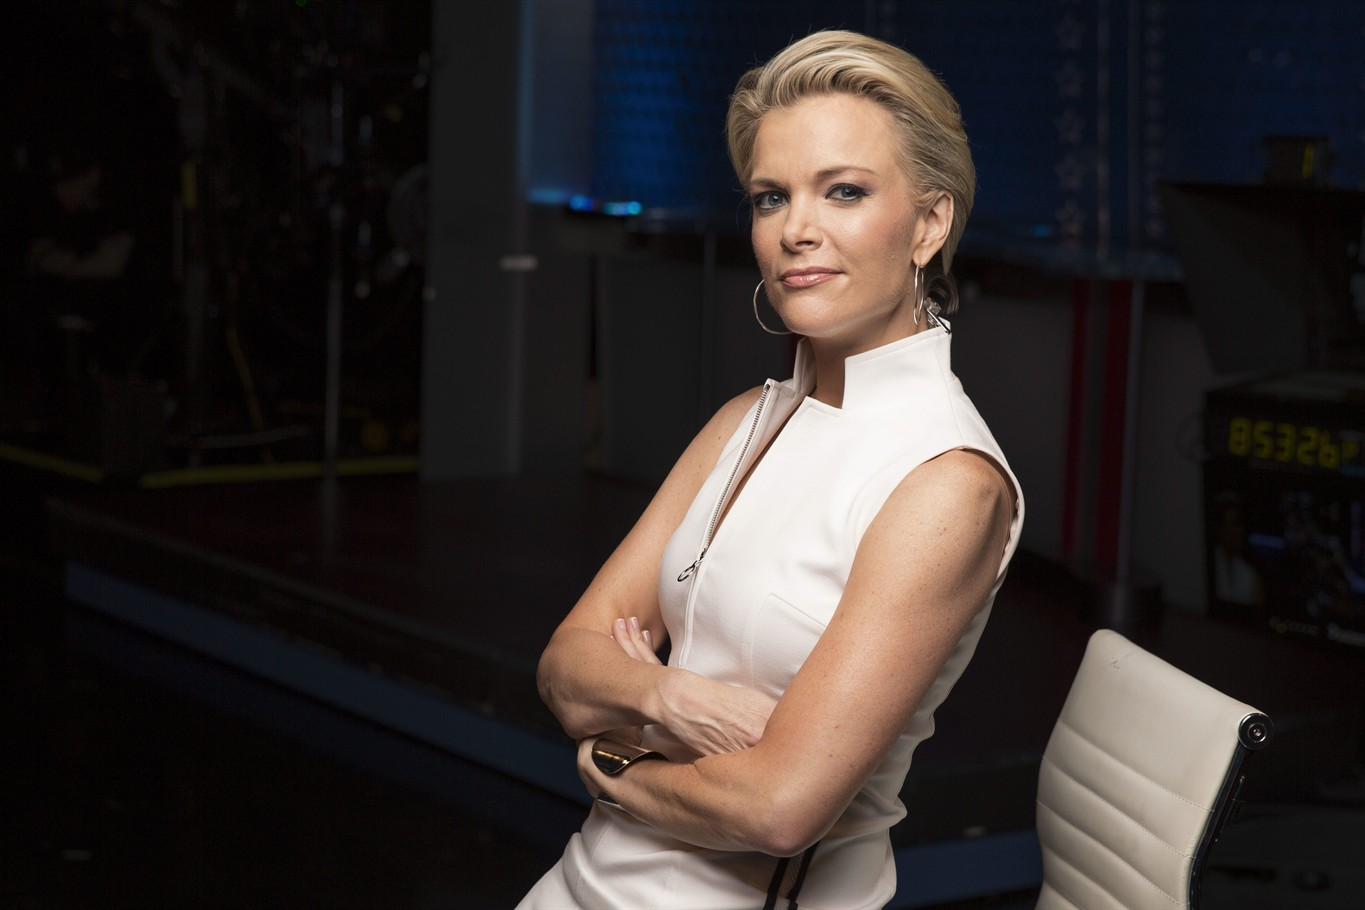 Megyn Kelly Opened Up About Leaving Fox News, Read Her Statement